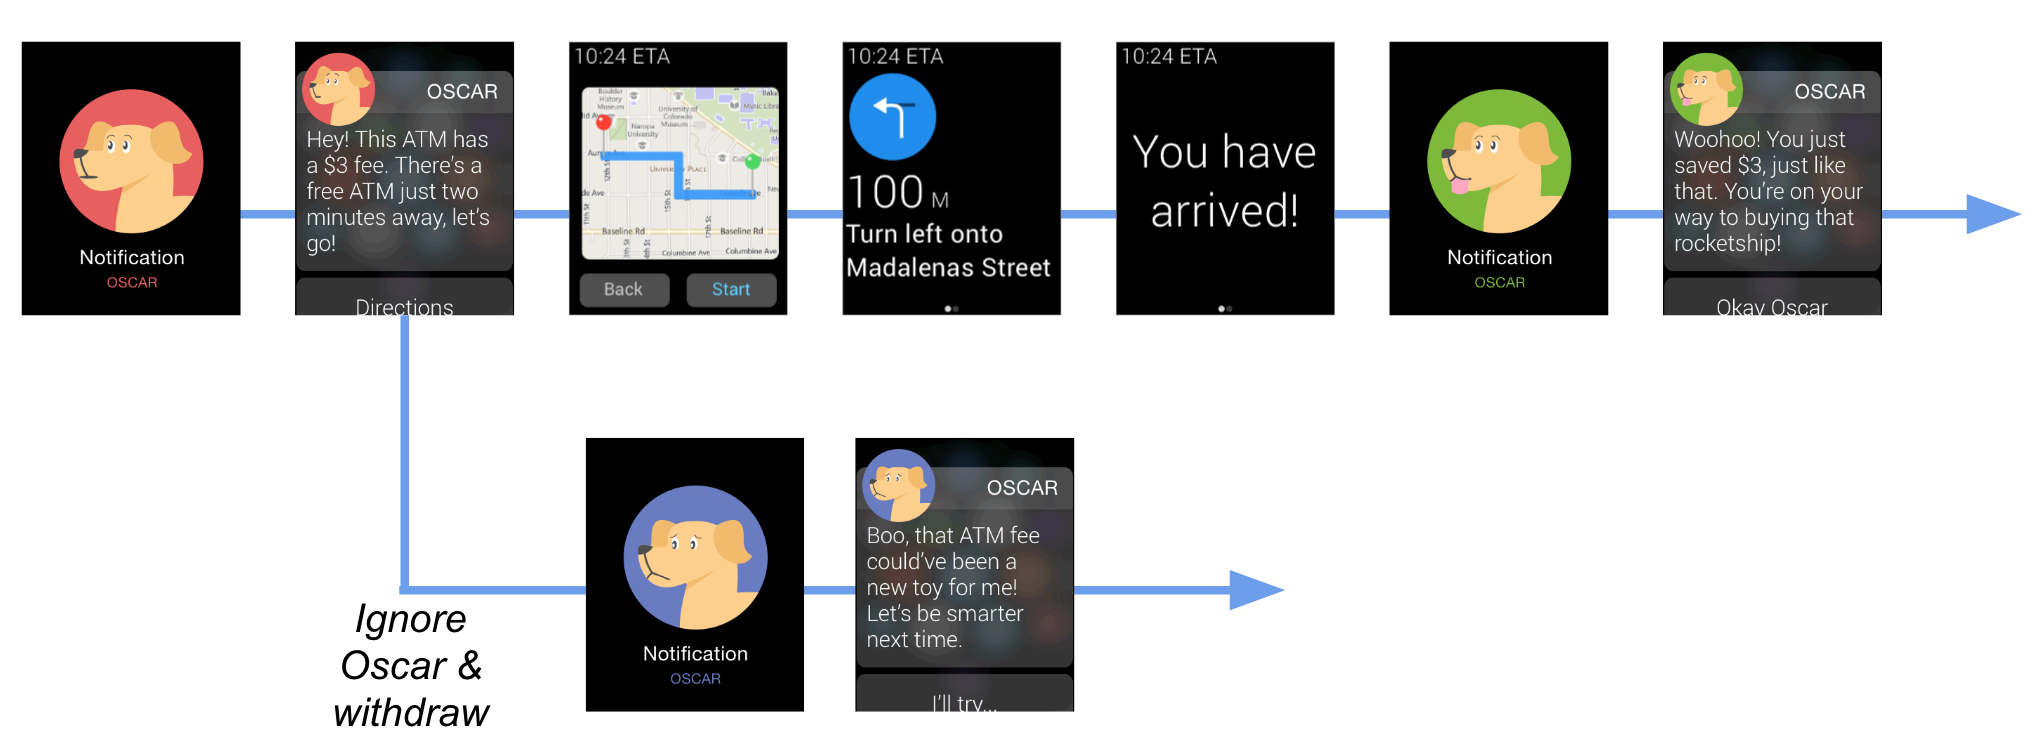 Navigation flow map - Oscar alerts the user of a possible fee